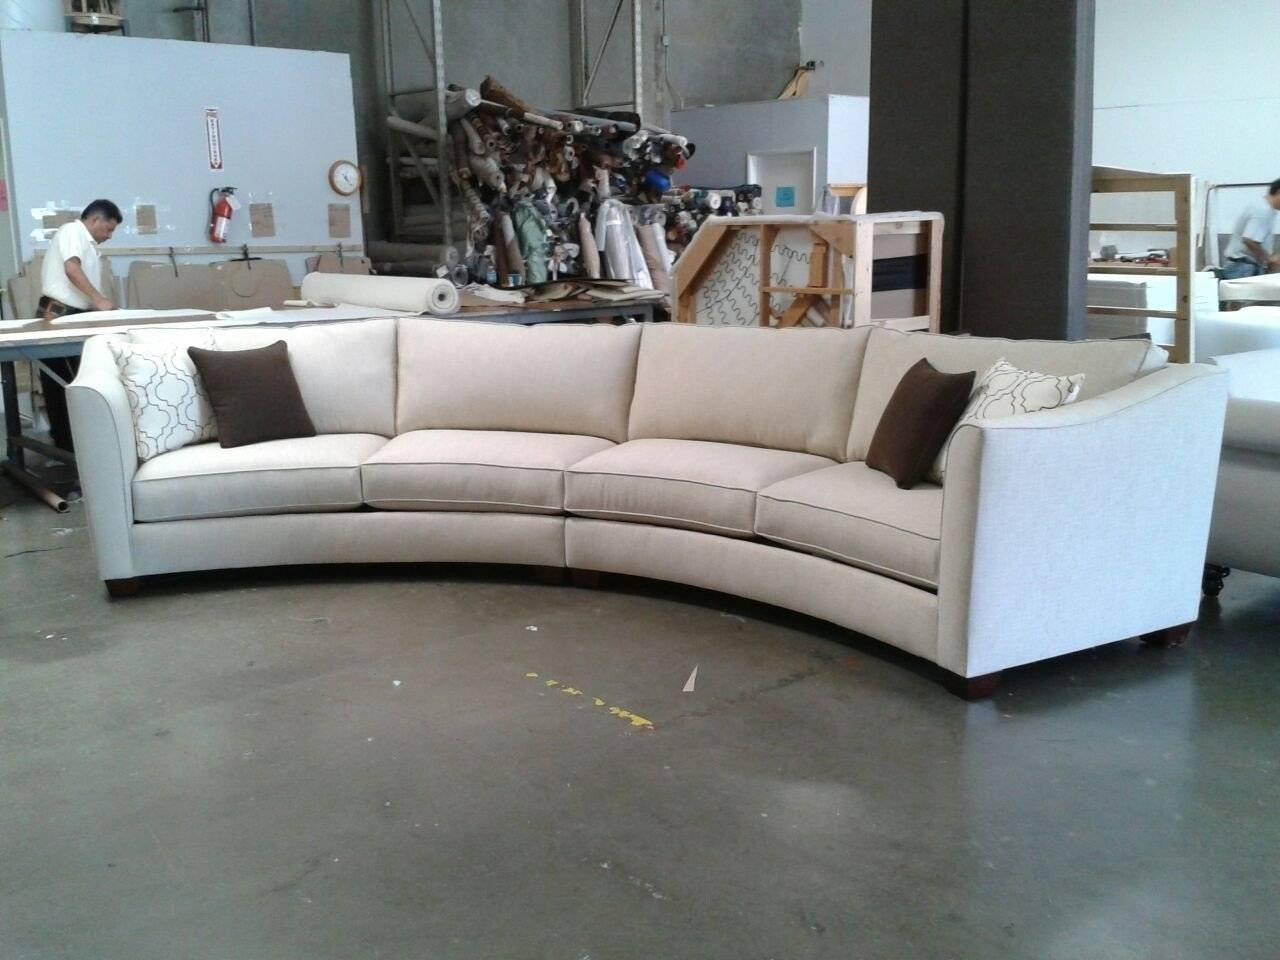 Curved Sectional Sofa Set - Rich Comfortable Upholstered Fabric regarding Contemporary Curved Sofas (Image 10 of 30)